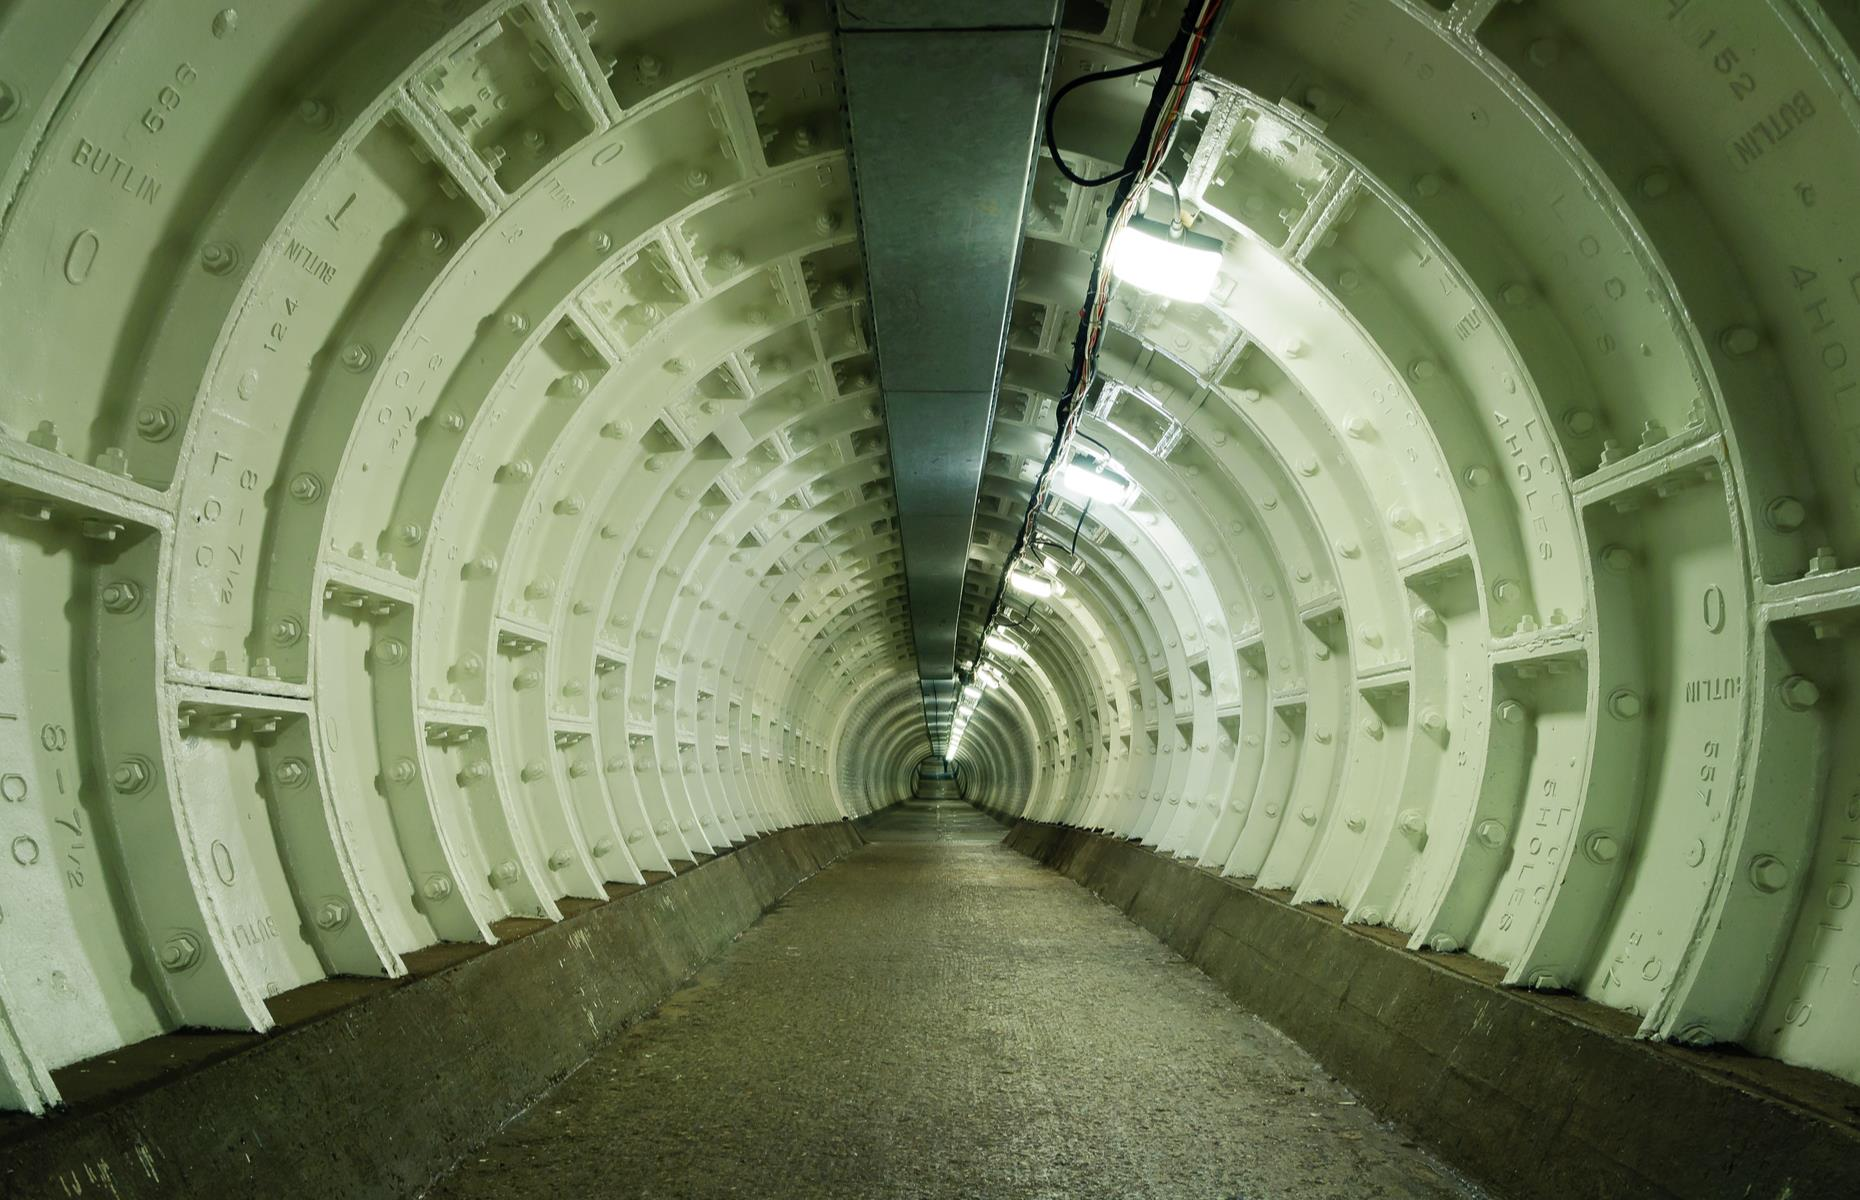 Slide 25 of 31: Built in 1902 to allow south London's dockworkers easier access to the docks, the cast iron Greenwich Foot Tunnel runs under the Thames from Cutty Sark in Greenwich to the Isle of Dogs on the north side. It's 1,214feet (370m) in length and around 50 feet (15m) deep with a spiral staircase at either end. Elevators were later added in 1904. Entrance is through two grand large glazed domes at either end, which along with the tunnel are listed structures. Along with the Woolwich Foot Tunnel, which opened in 1912, the passages were restored recently and are now used by 1.5 million people a year.